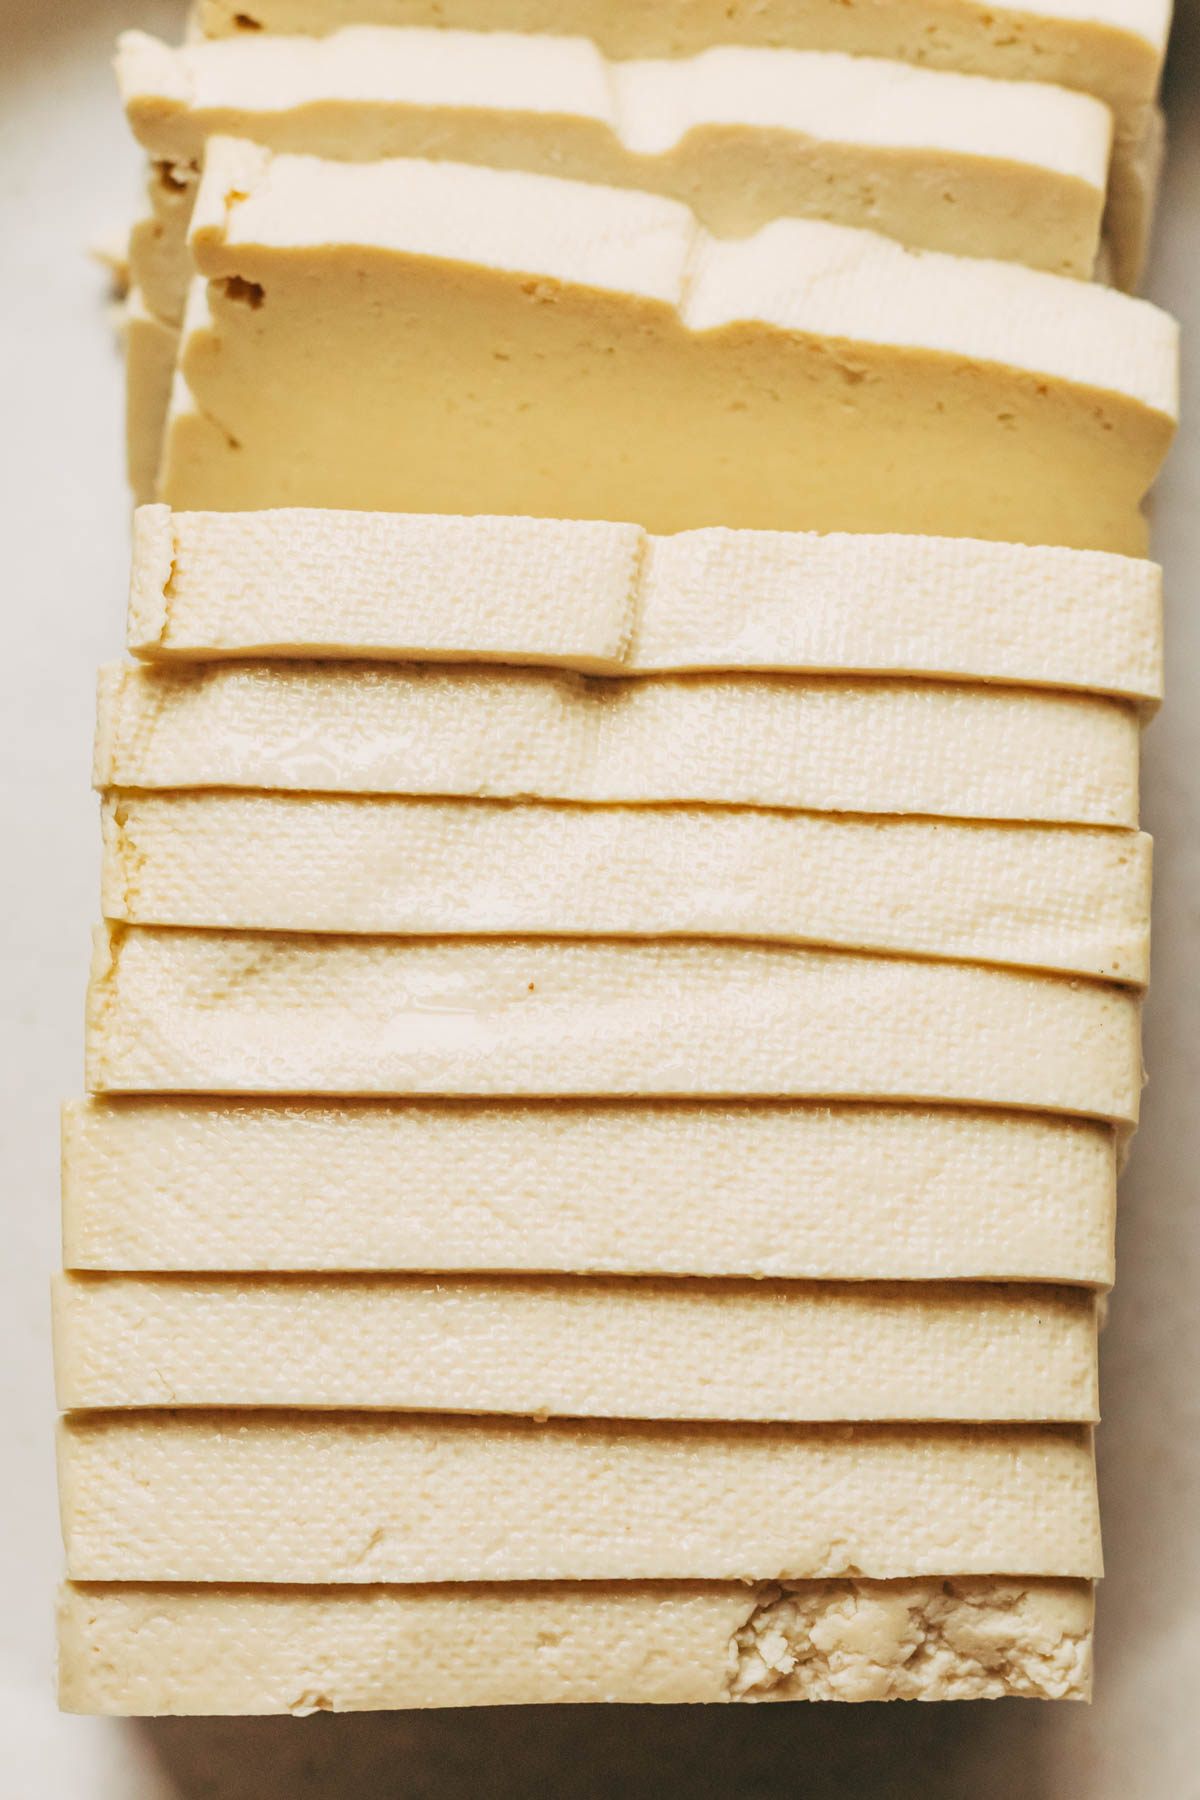 Close up of tofu slices to show the thickness desired.